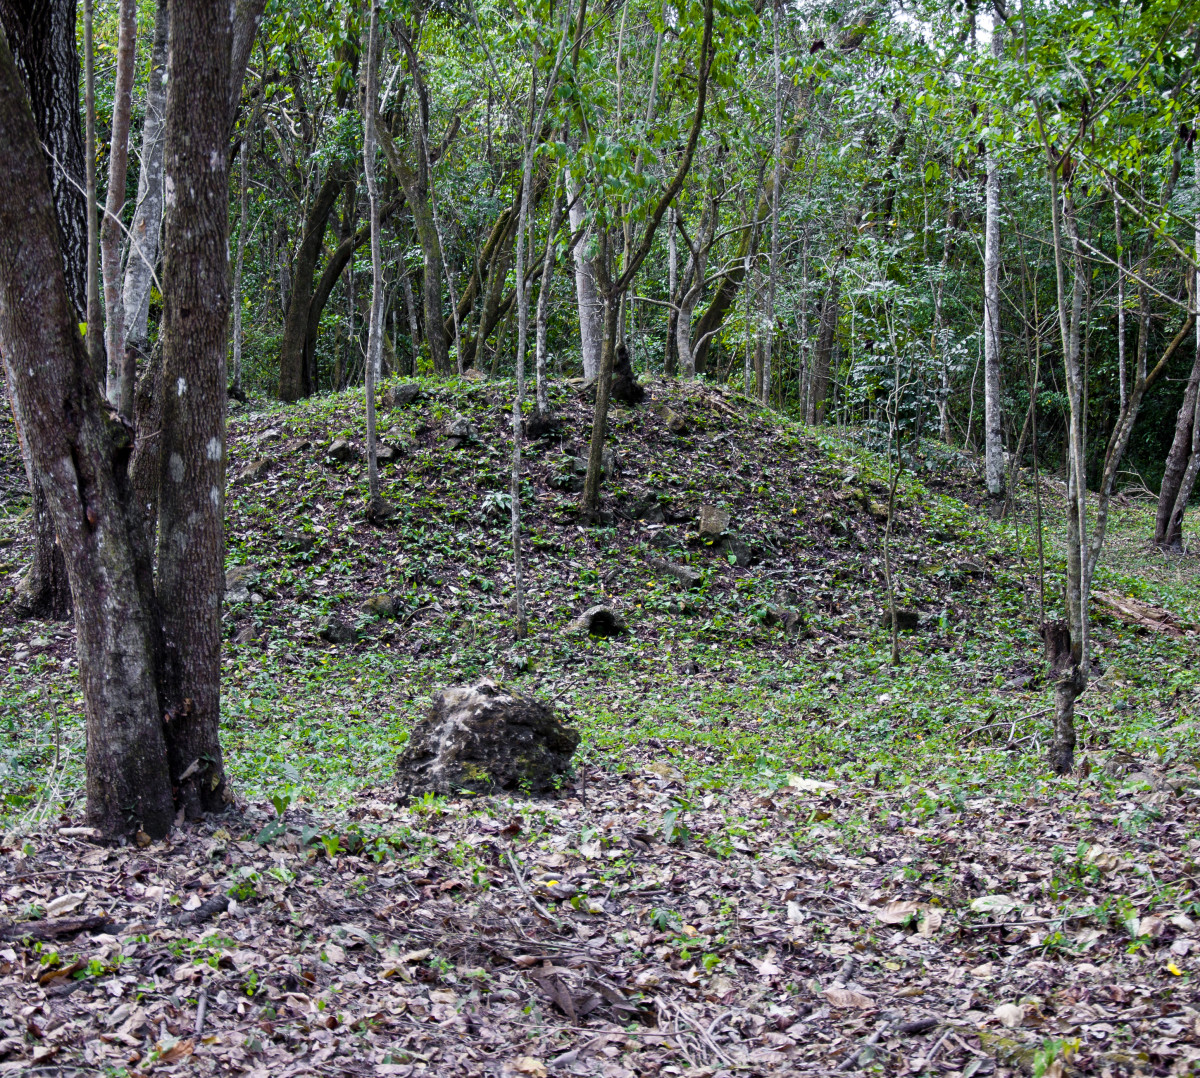 Mayan structure awaiting excavation.